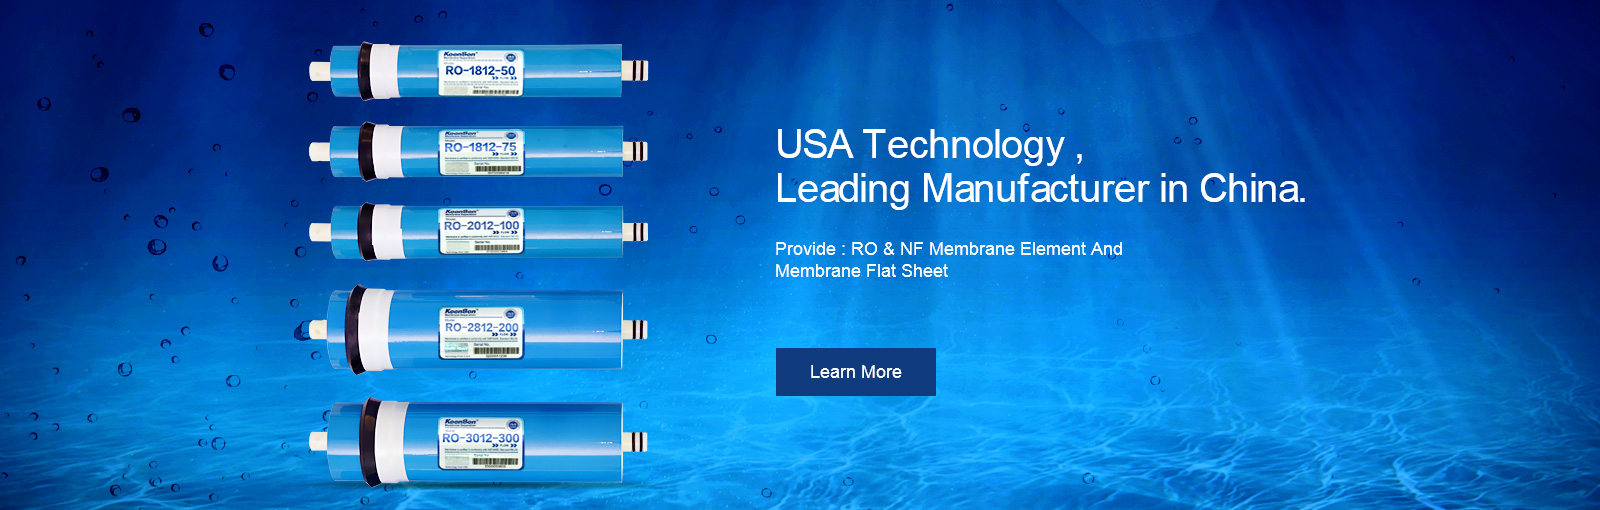 USA Technology, Leading Manufacturer in China.